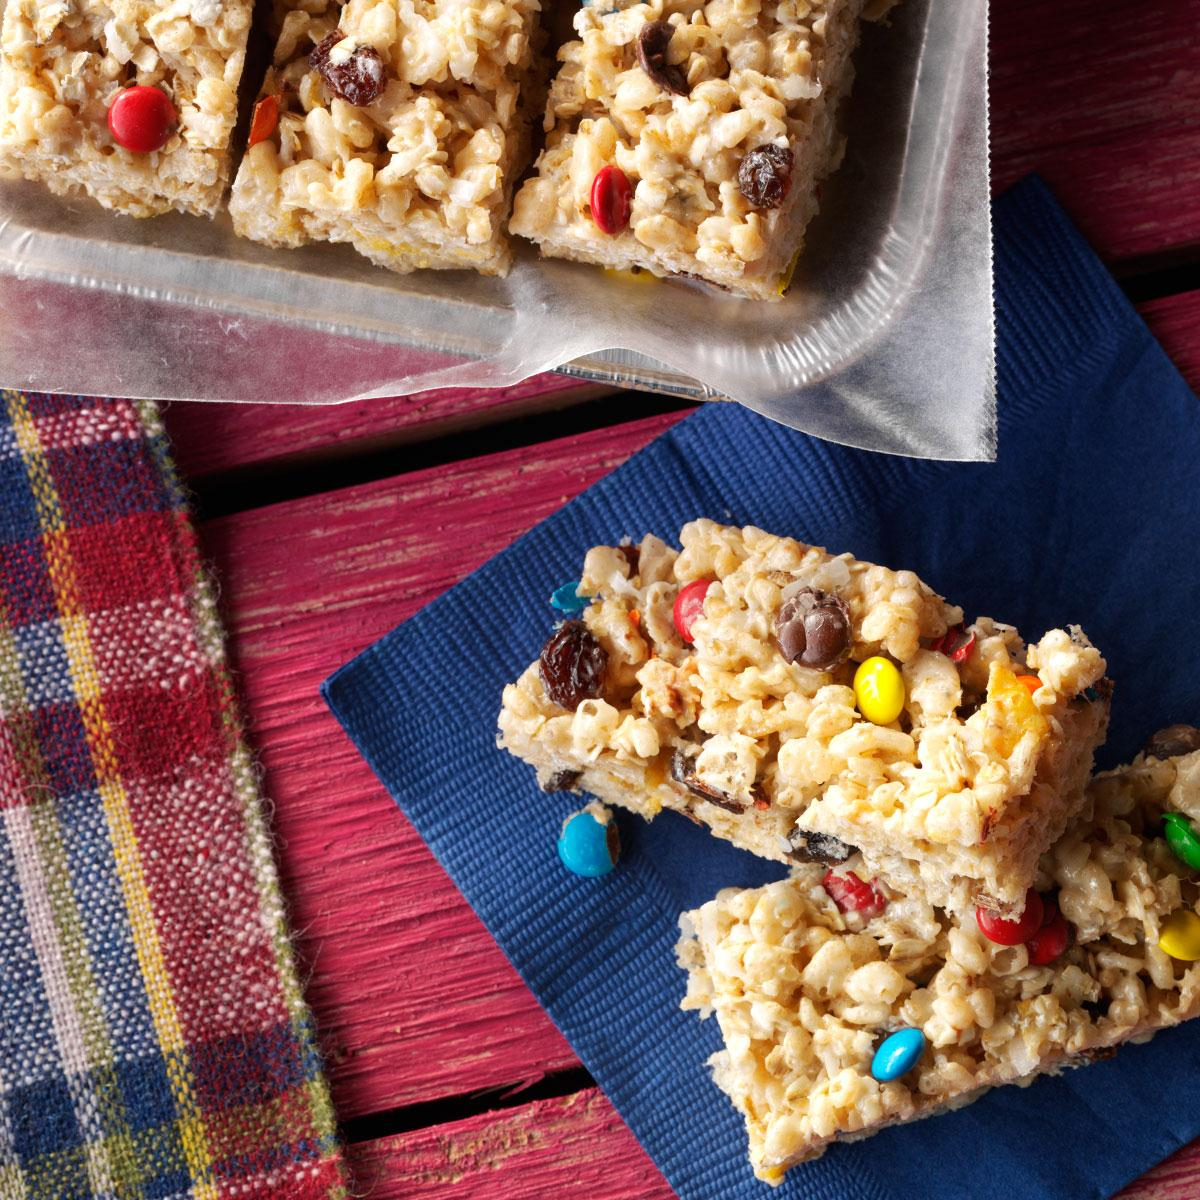 Top 10 Great Camping Recipes: No-Bake Cereal Cookie Bars Recipe